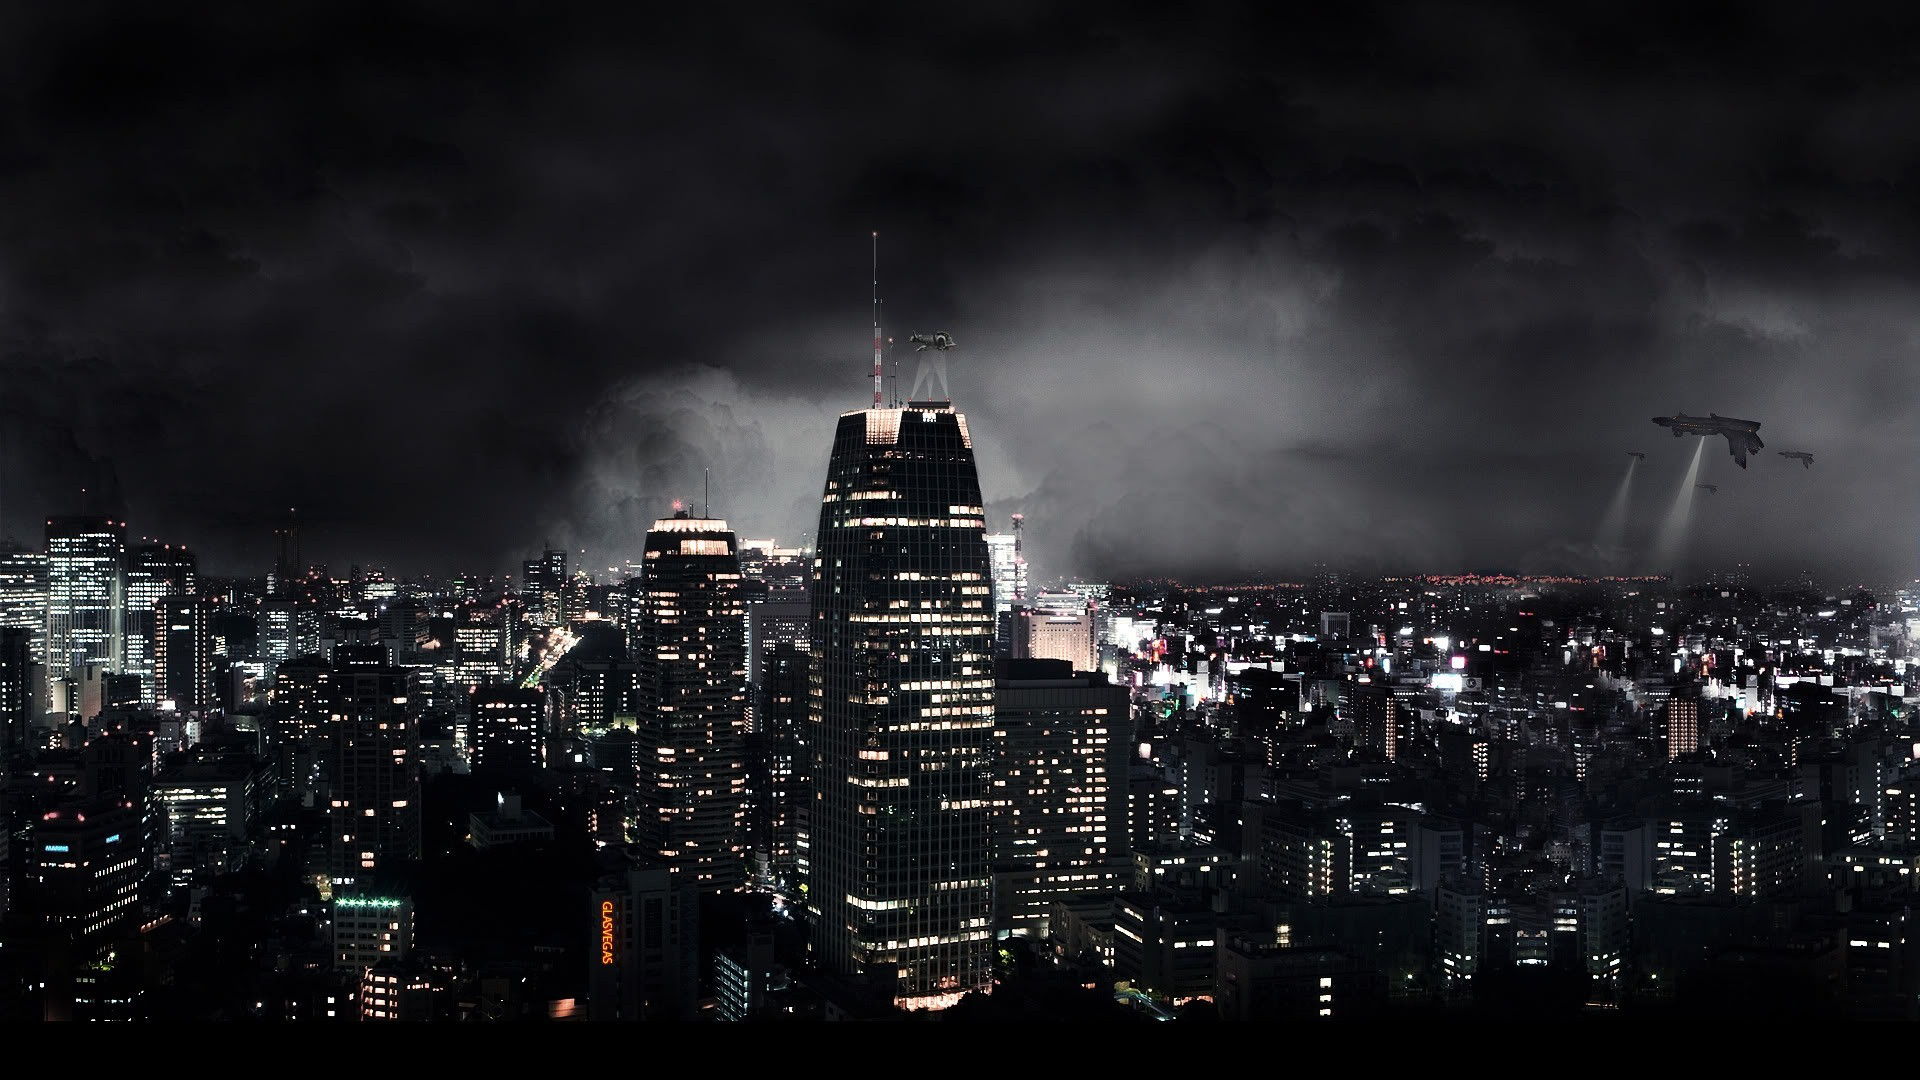 Cool Pictures City Skyline HD Wallpaper Cool Pictures City Skyline 1920x1080